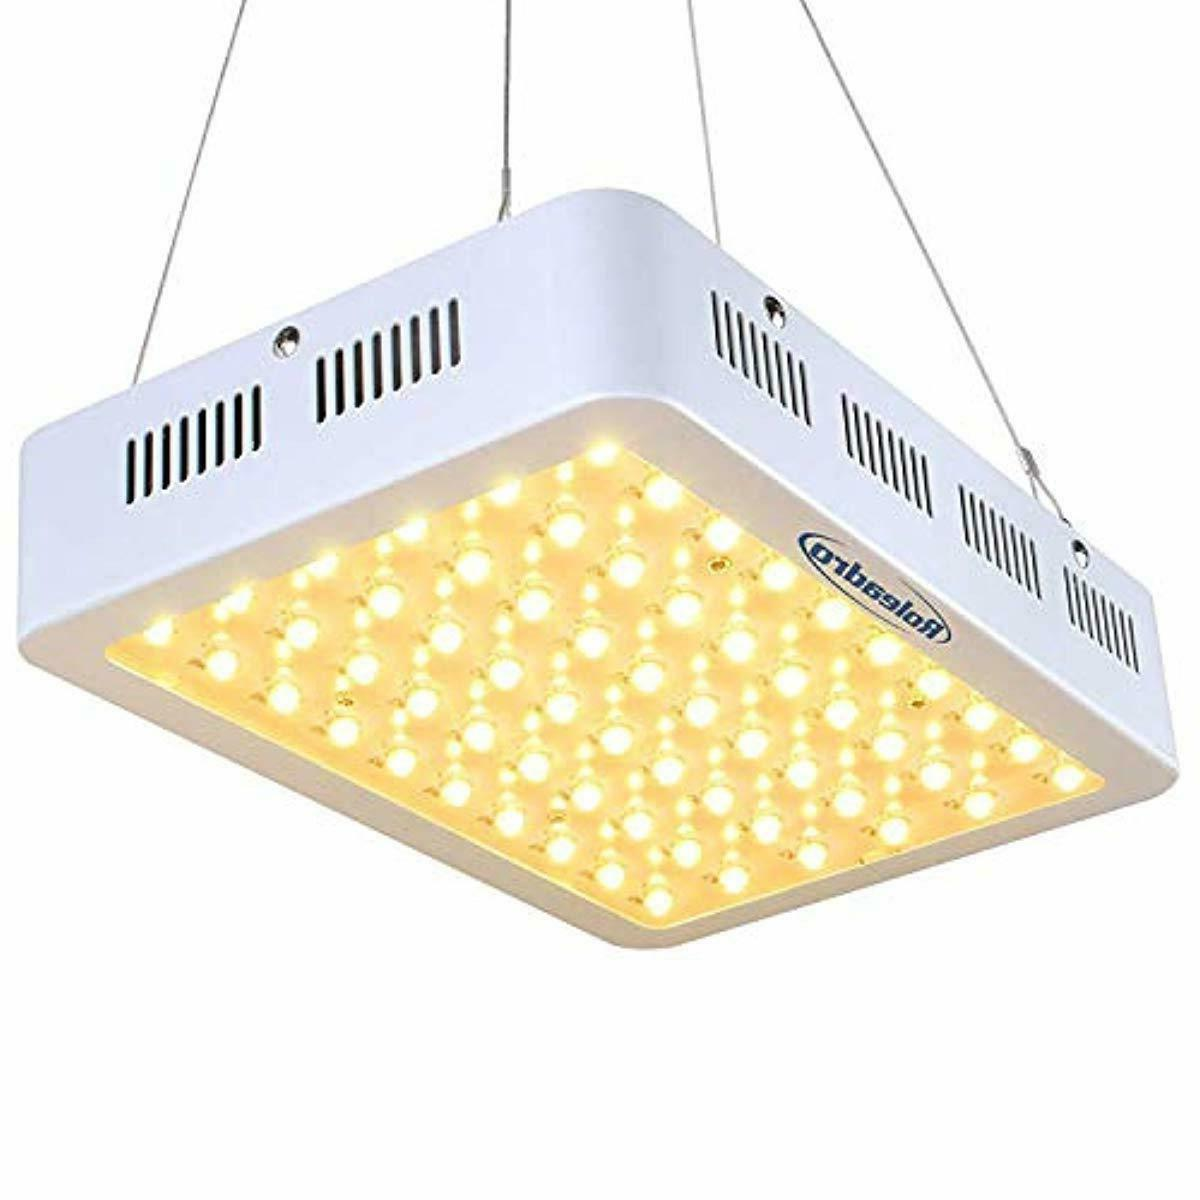 Roleadro 600W LED Grow Light 2nd Generation Series Plant Lig